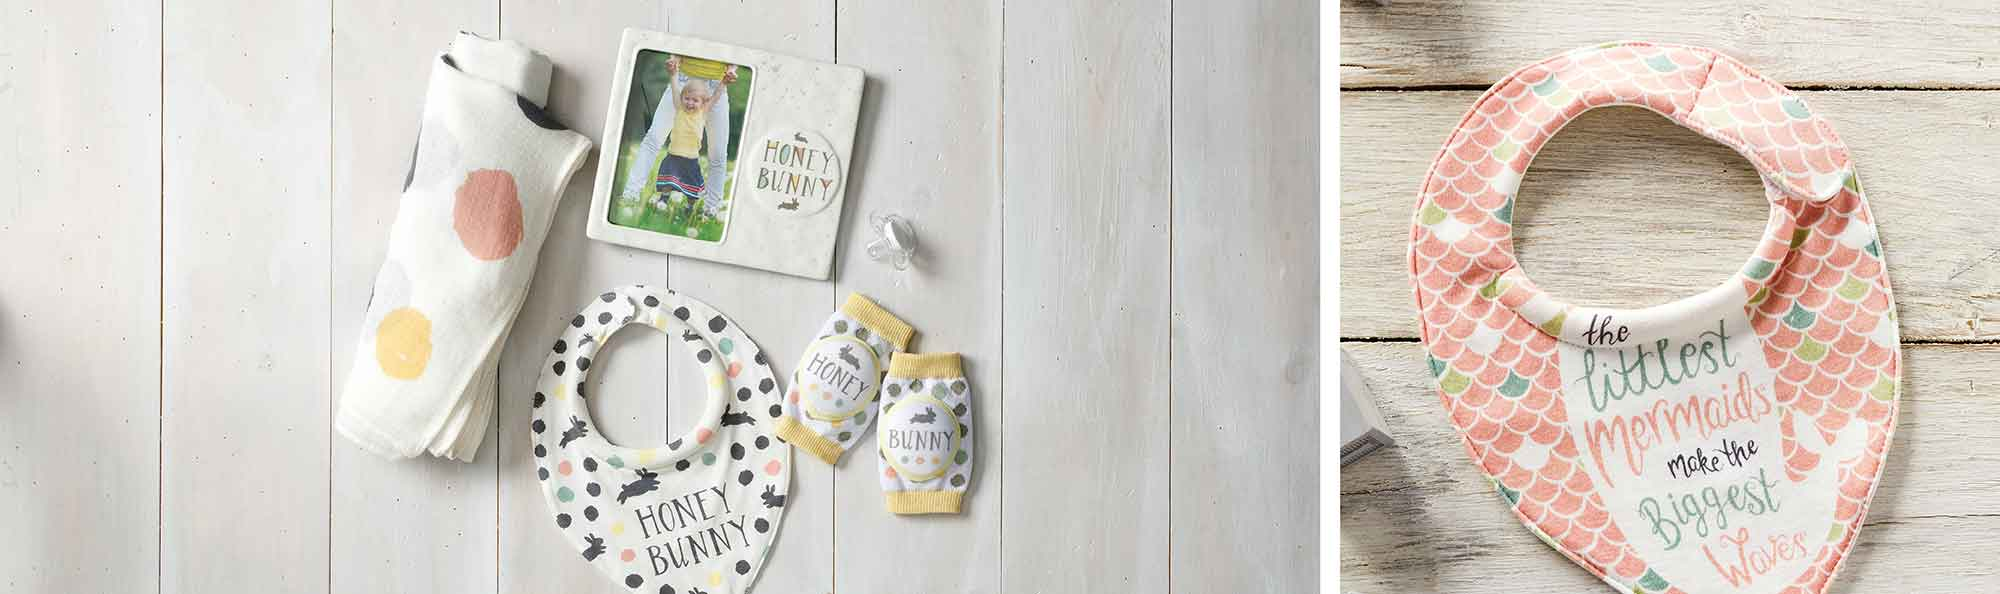 two photos of baby bibs and other useful baby products like a blanket and baby binky